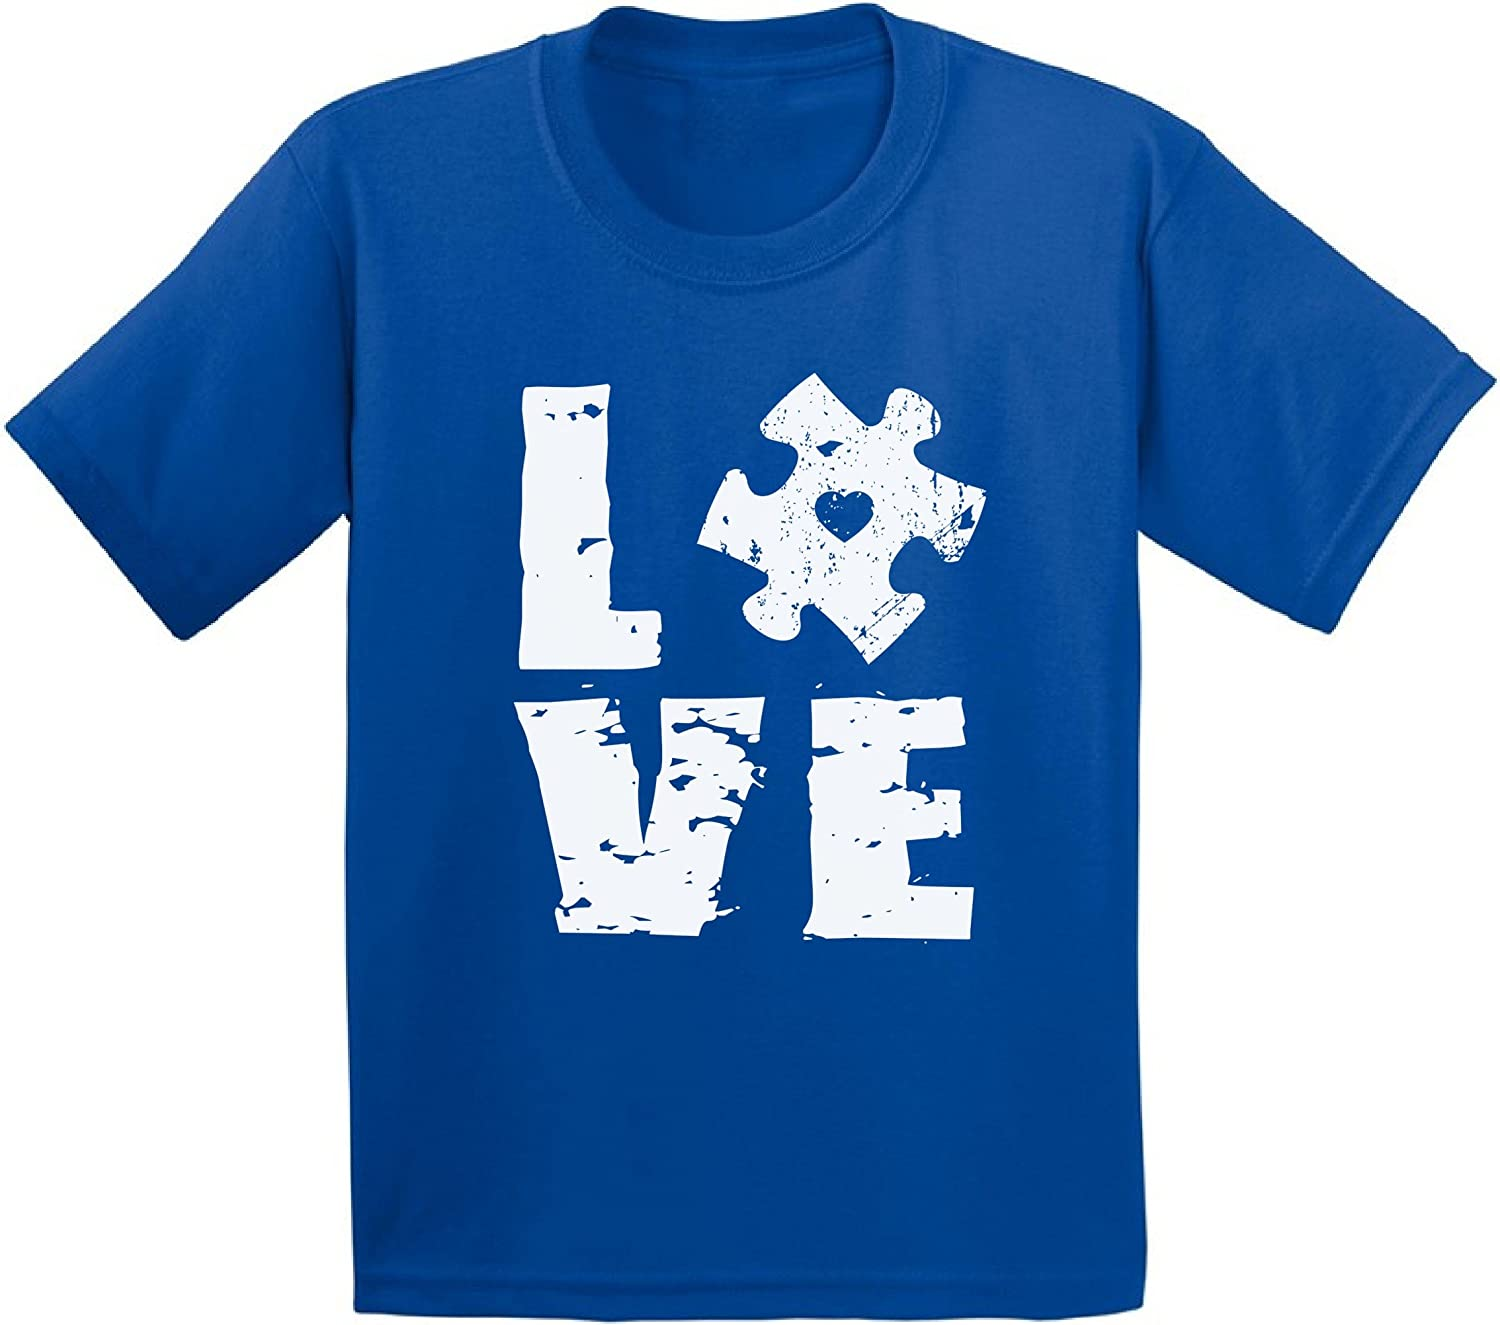 Awkward Styles Toddler Autism Awareness Puzzle Top Autism Shirts for Boys Girls